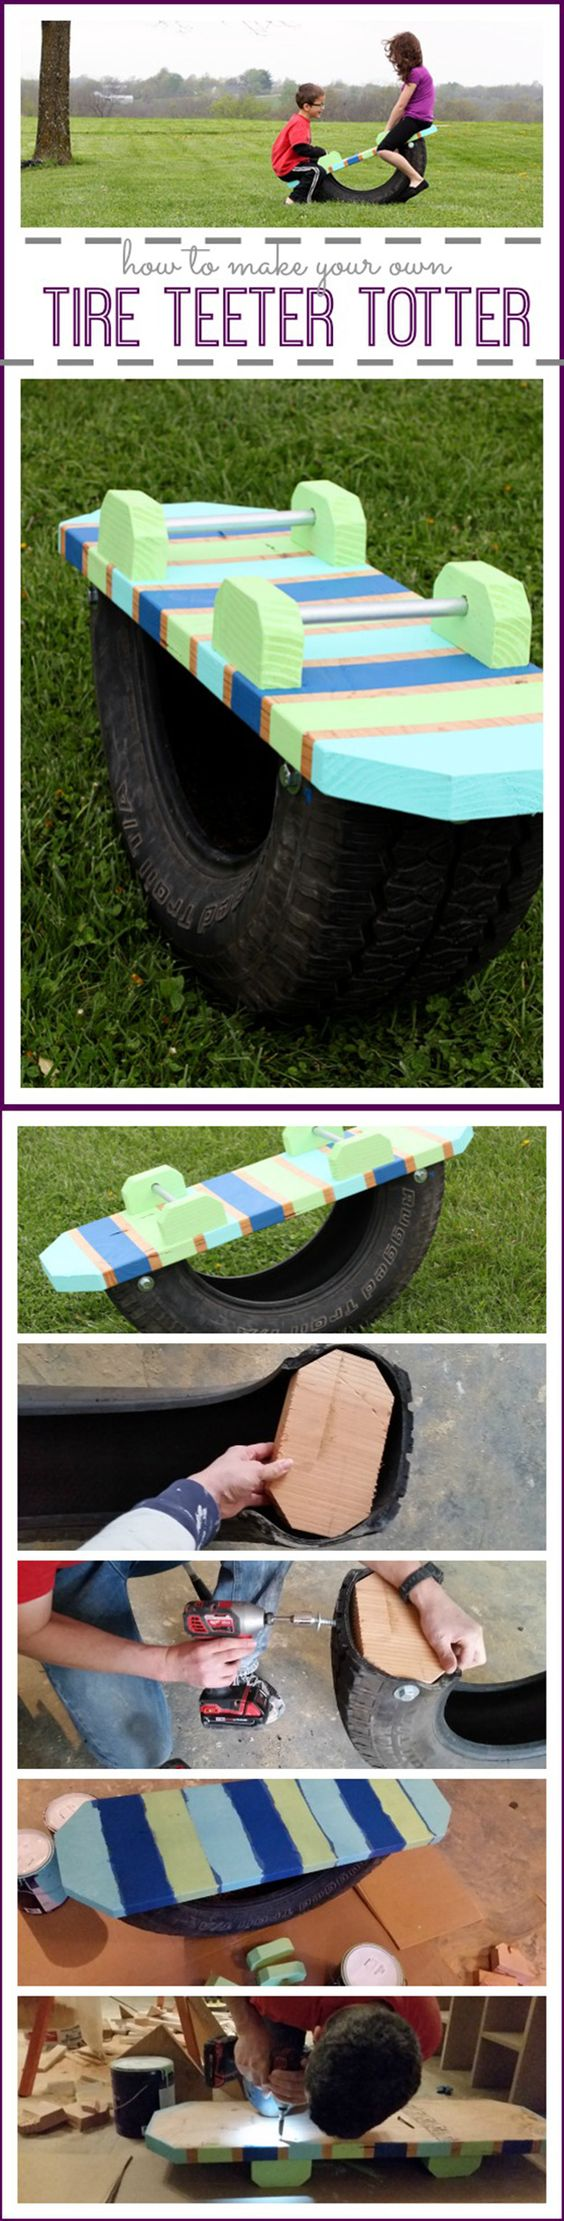 Tire Totter for Kids.